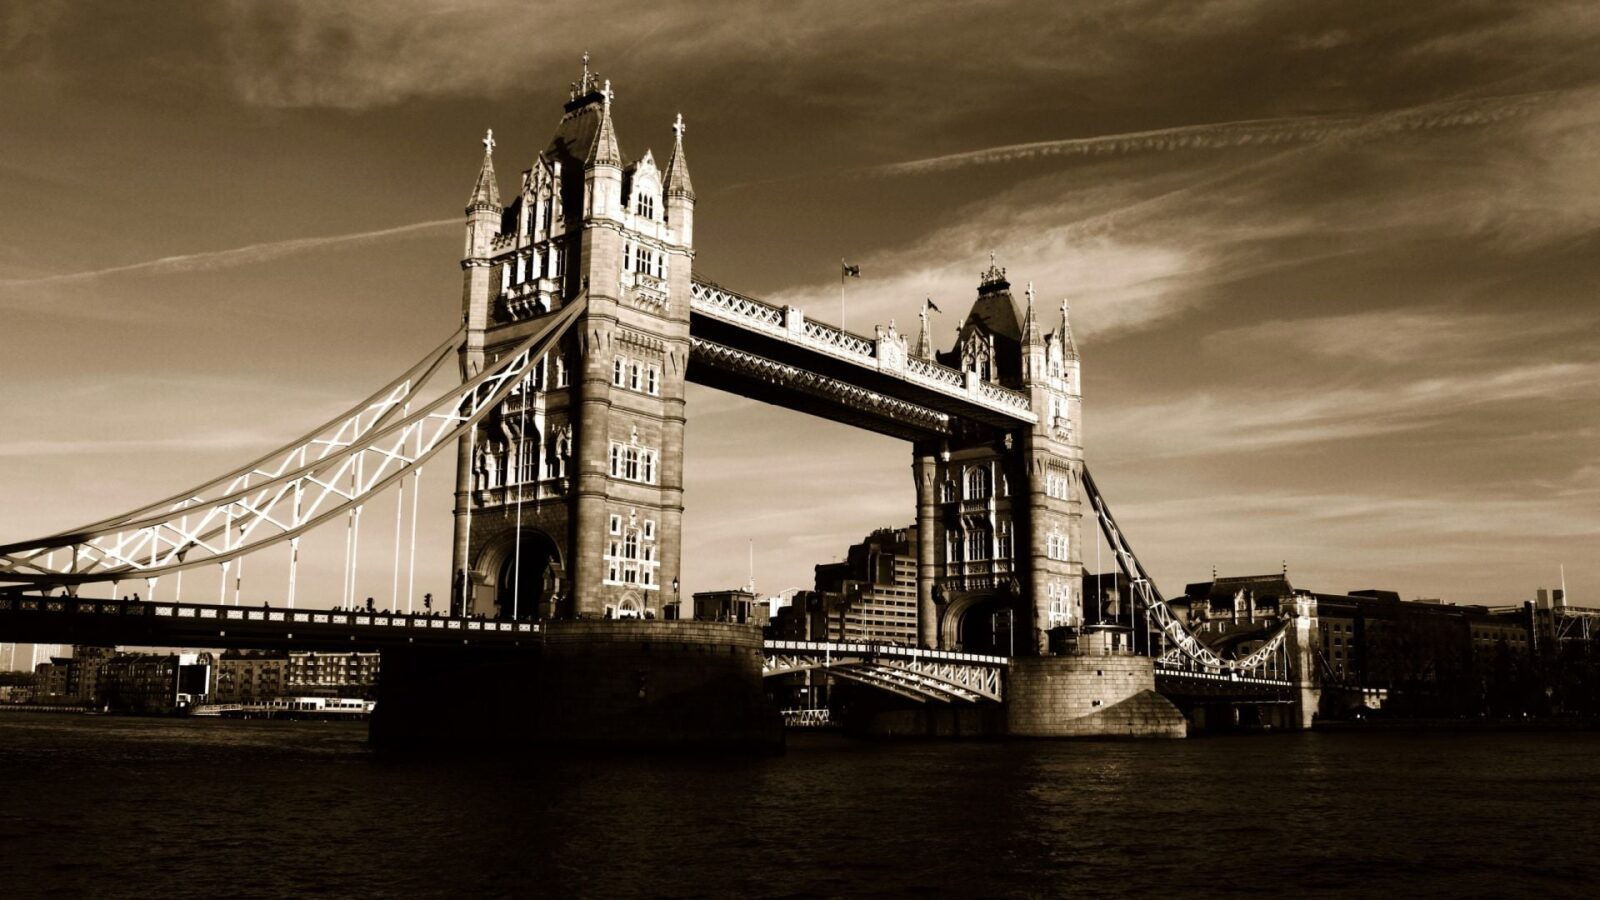 Sky Hd Wallpaper London Tower Bridge Wallpapers Hd Backgrounds Pictures